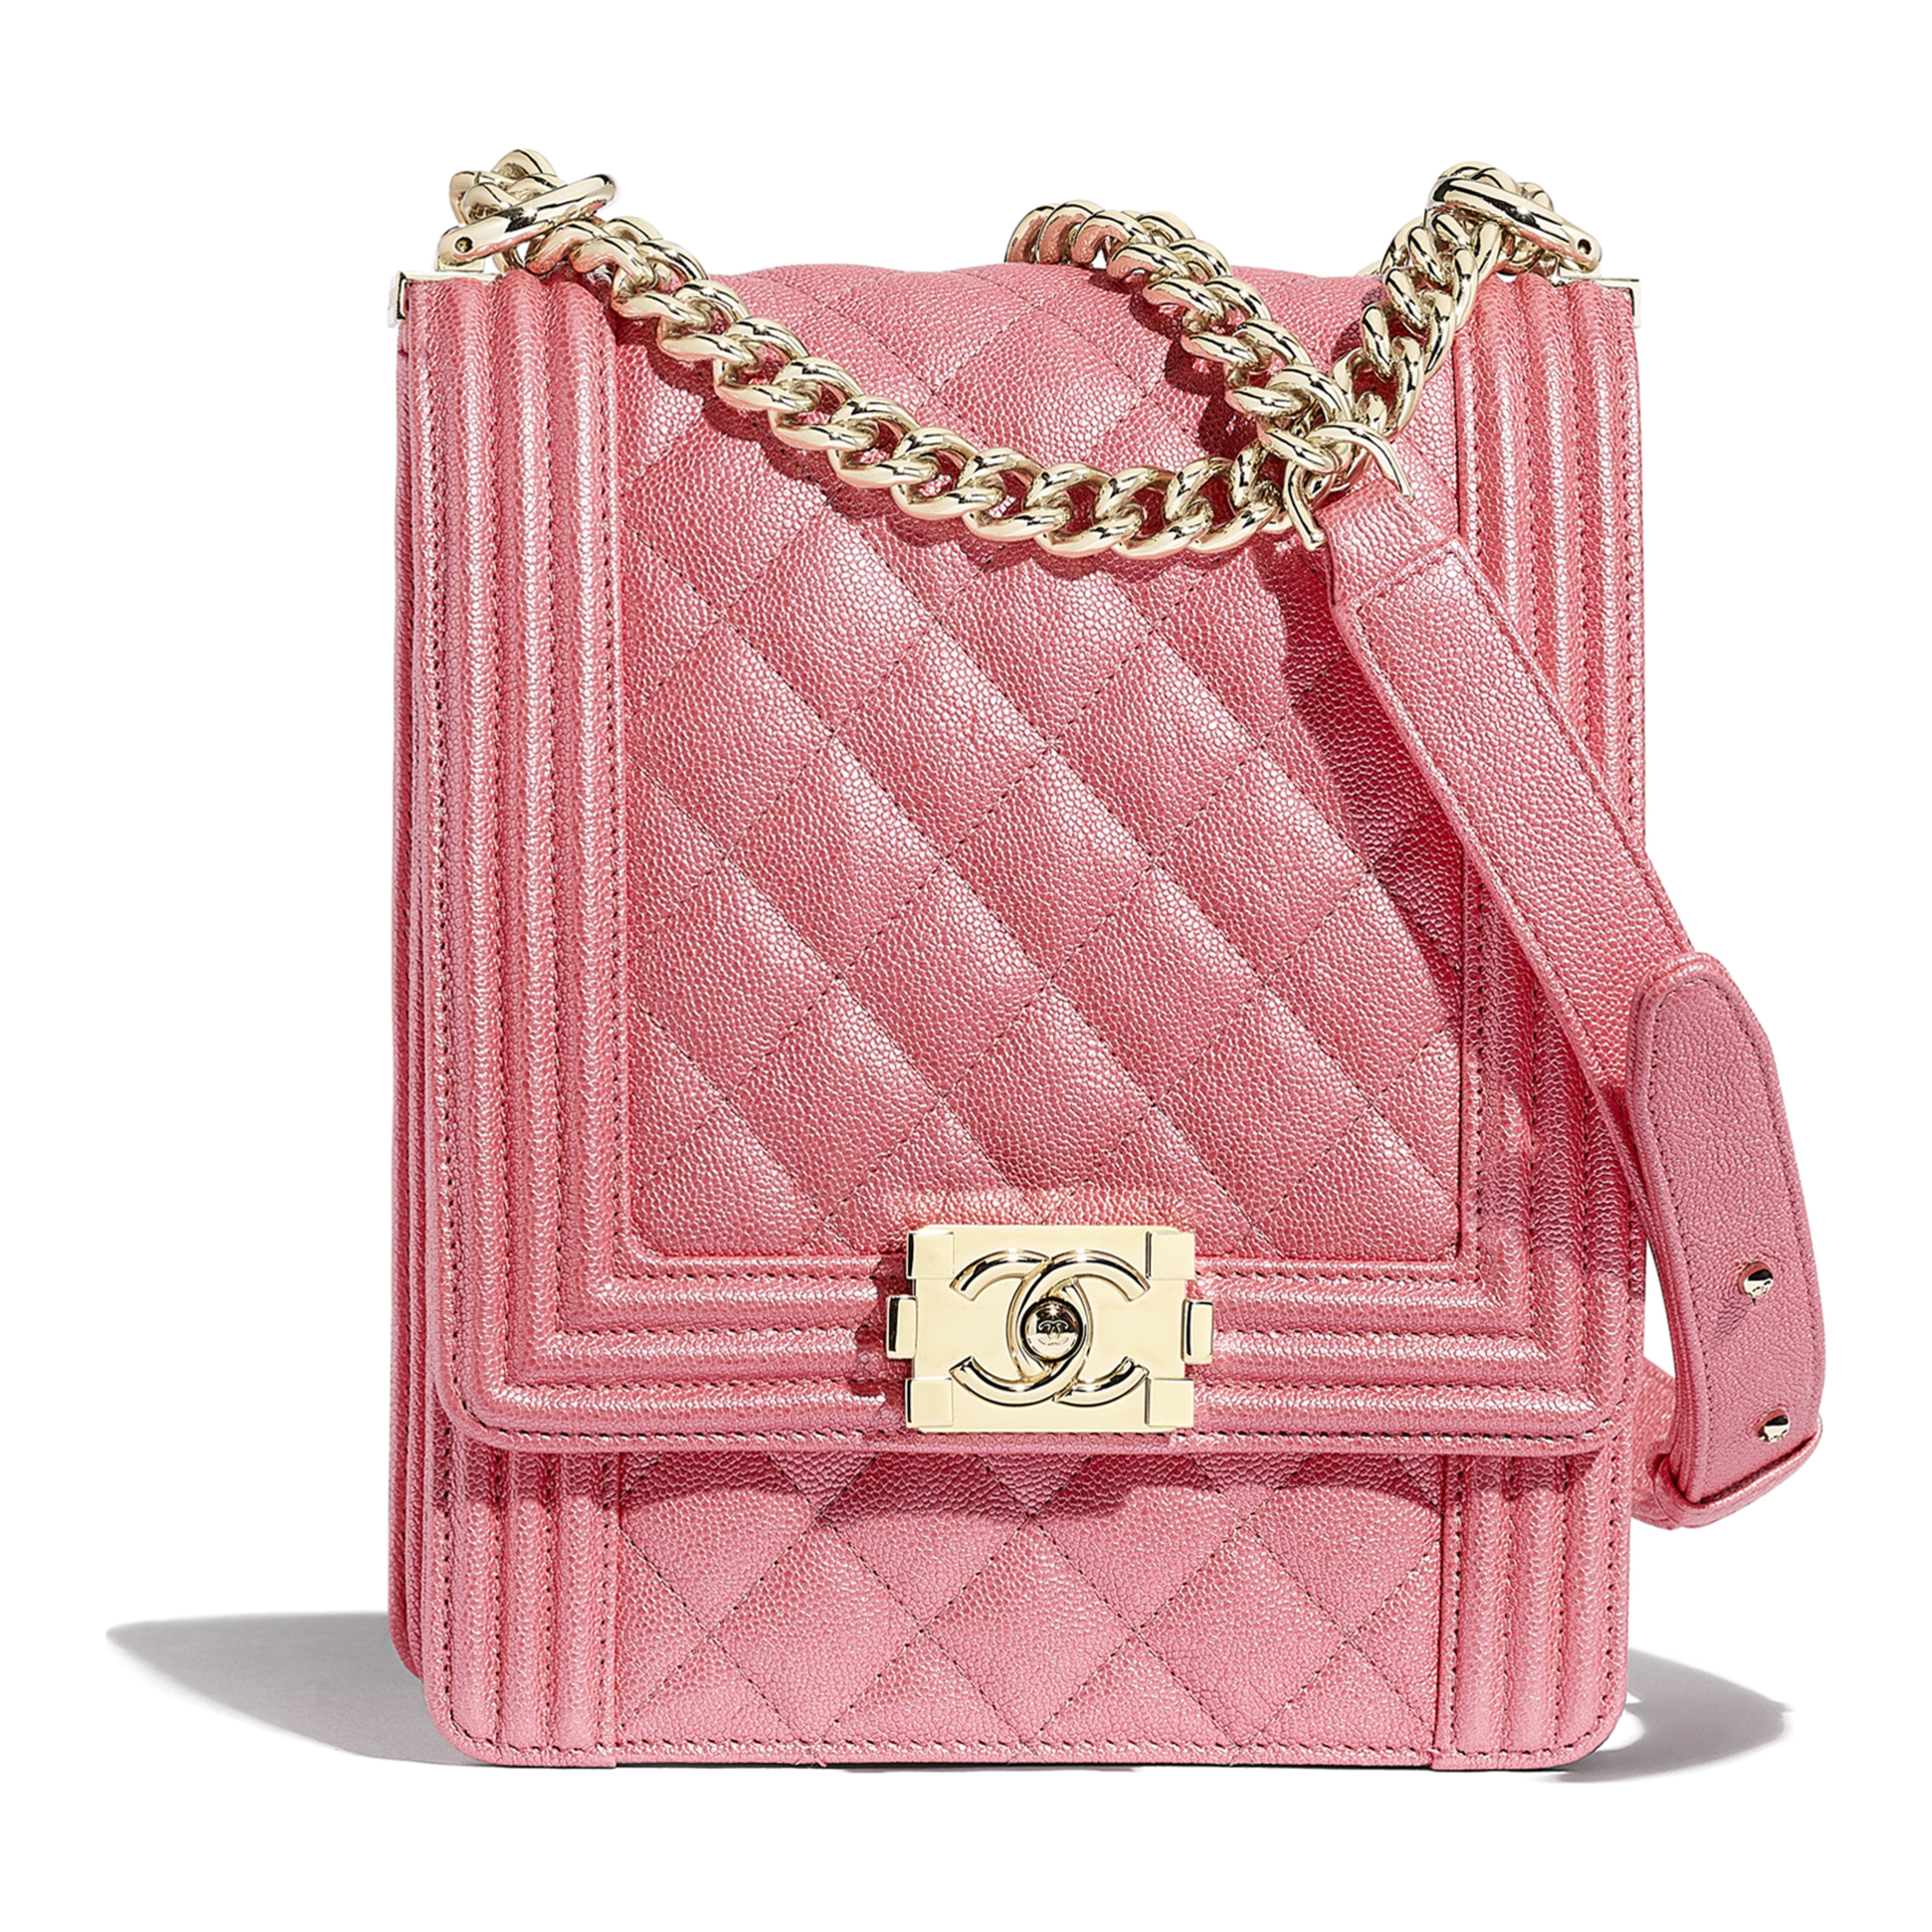 16aacaca89d11 Metallic Grained Calfskin   Gold-Tone Metal Pink BOY CHANEL Handbag ...